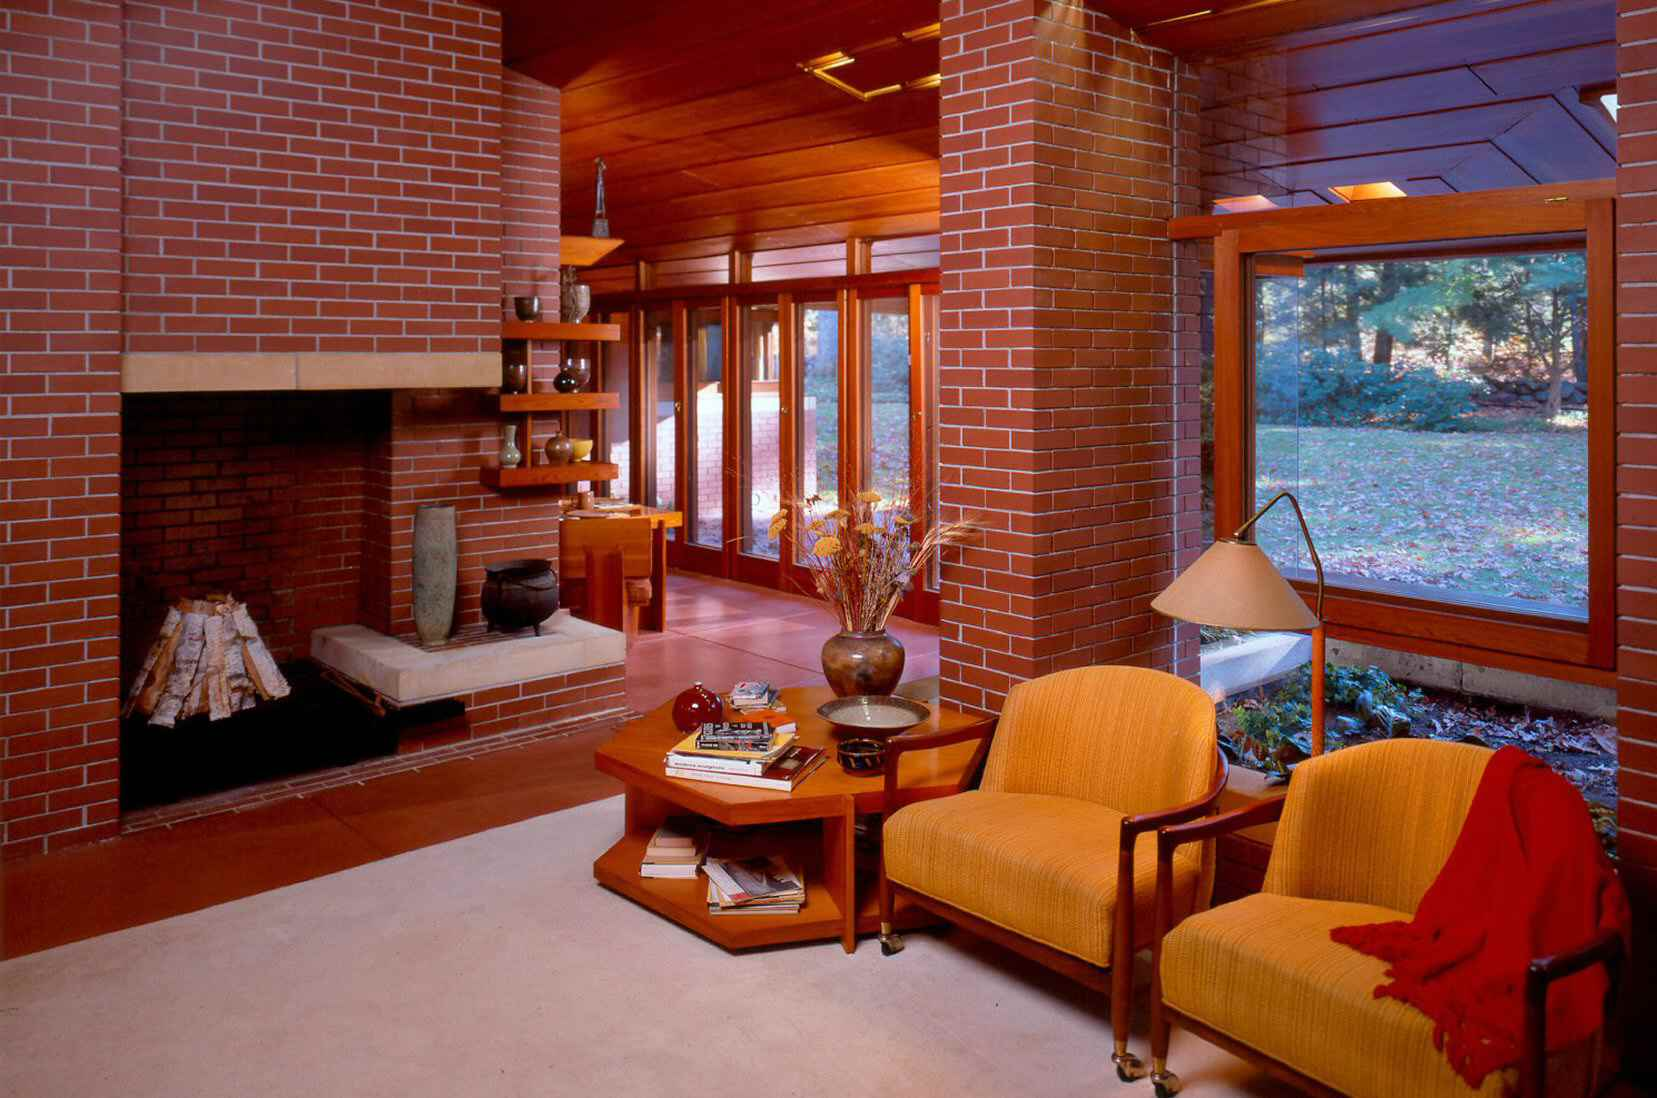 Inside the Garden Room at the Zimmerman House by Frank Lloyd Wright